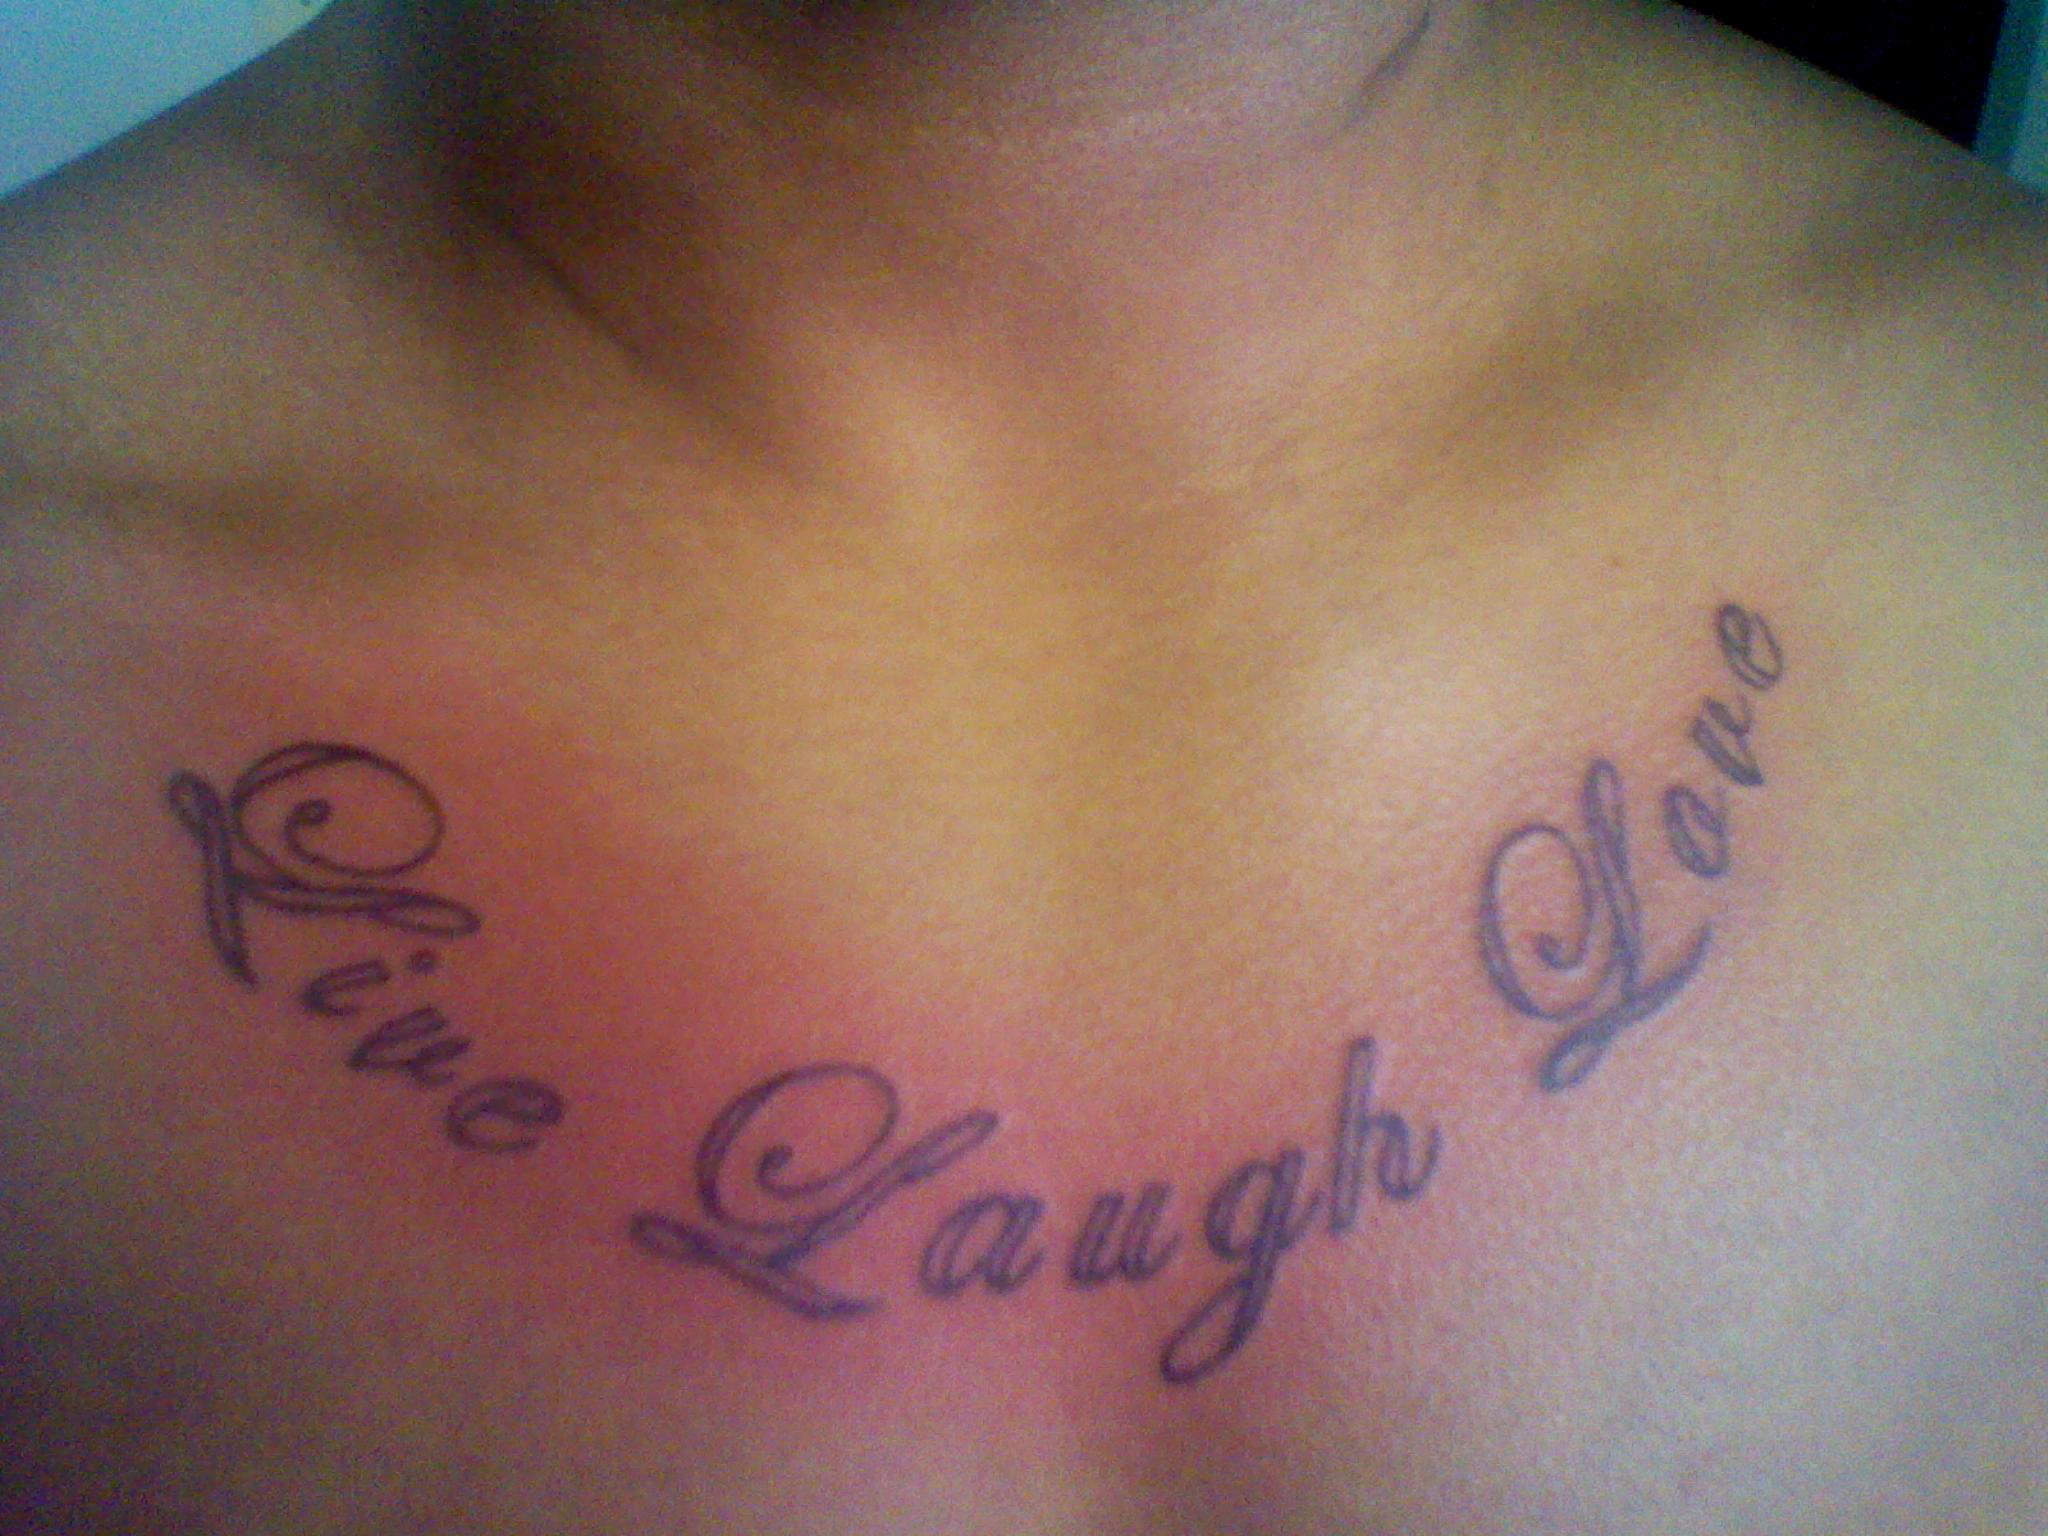 Live Laugh Love Tattoos Designs Ideas And Meaning Tattoos For You within sizing 2048 X 1536